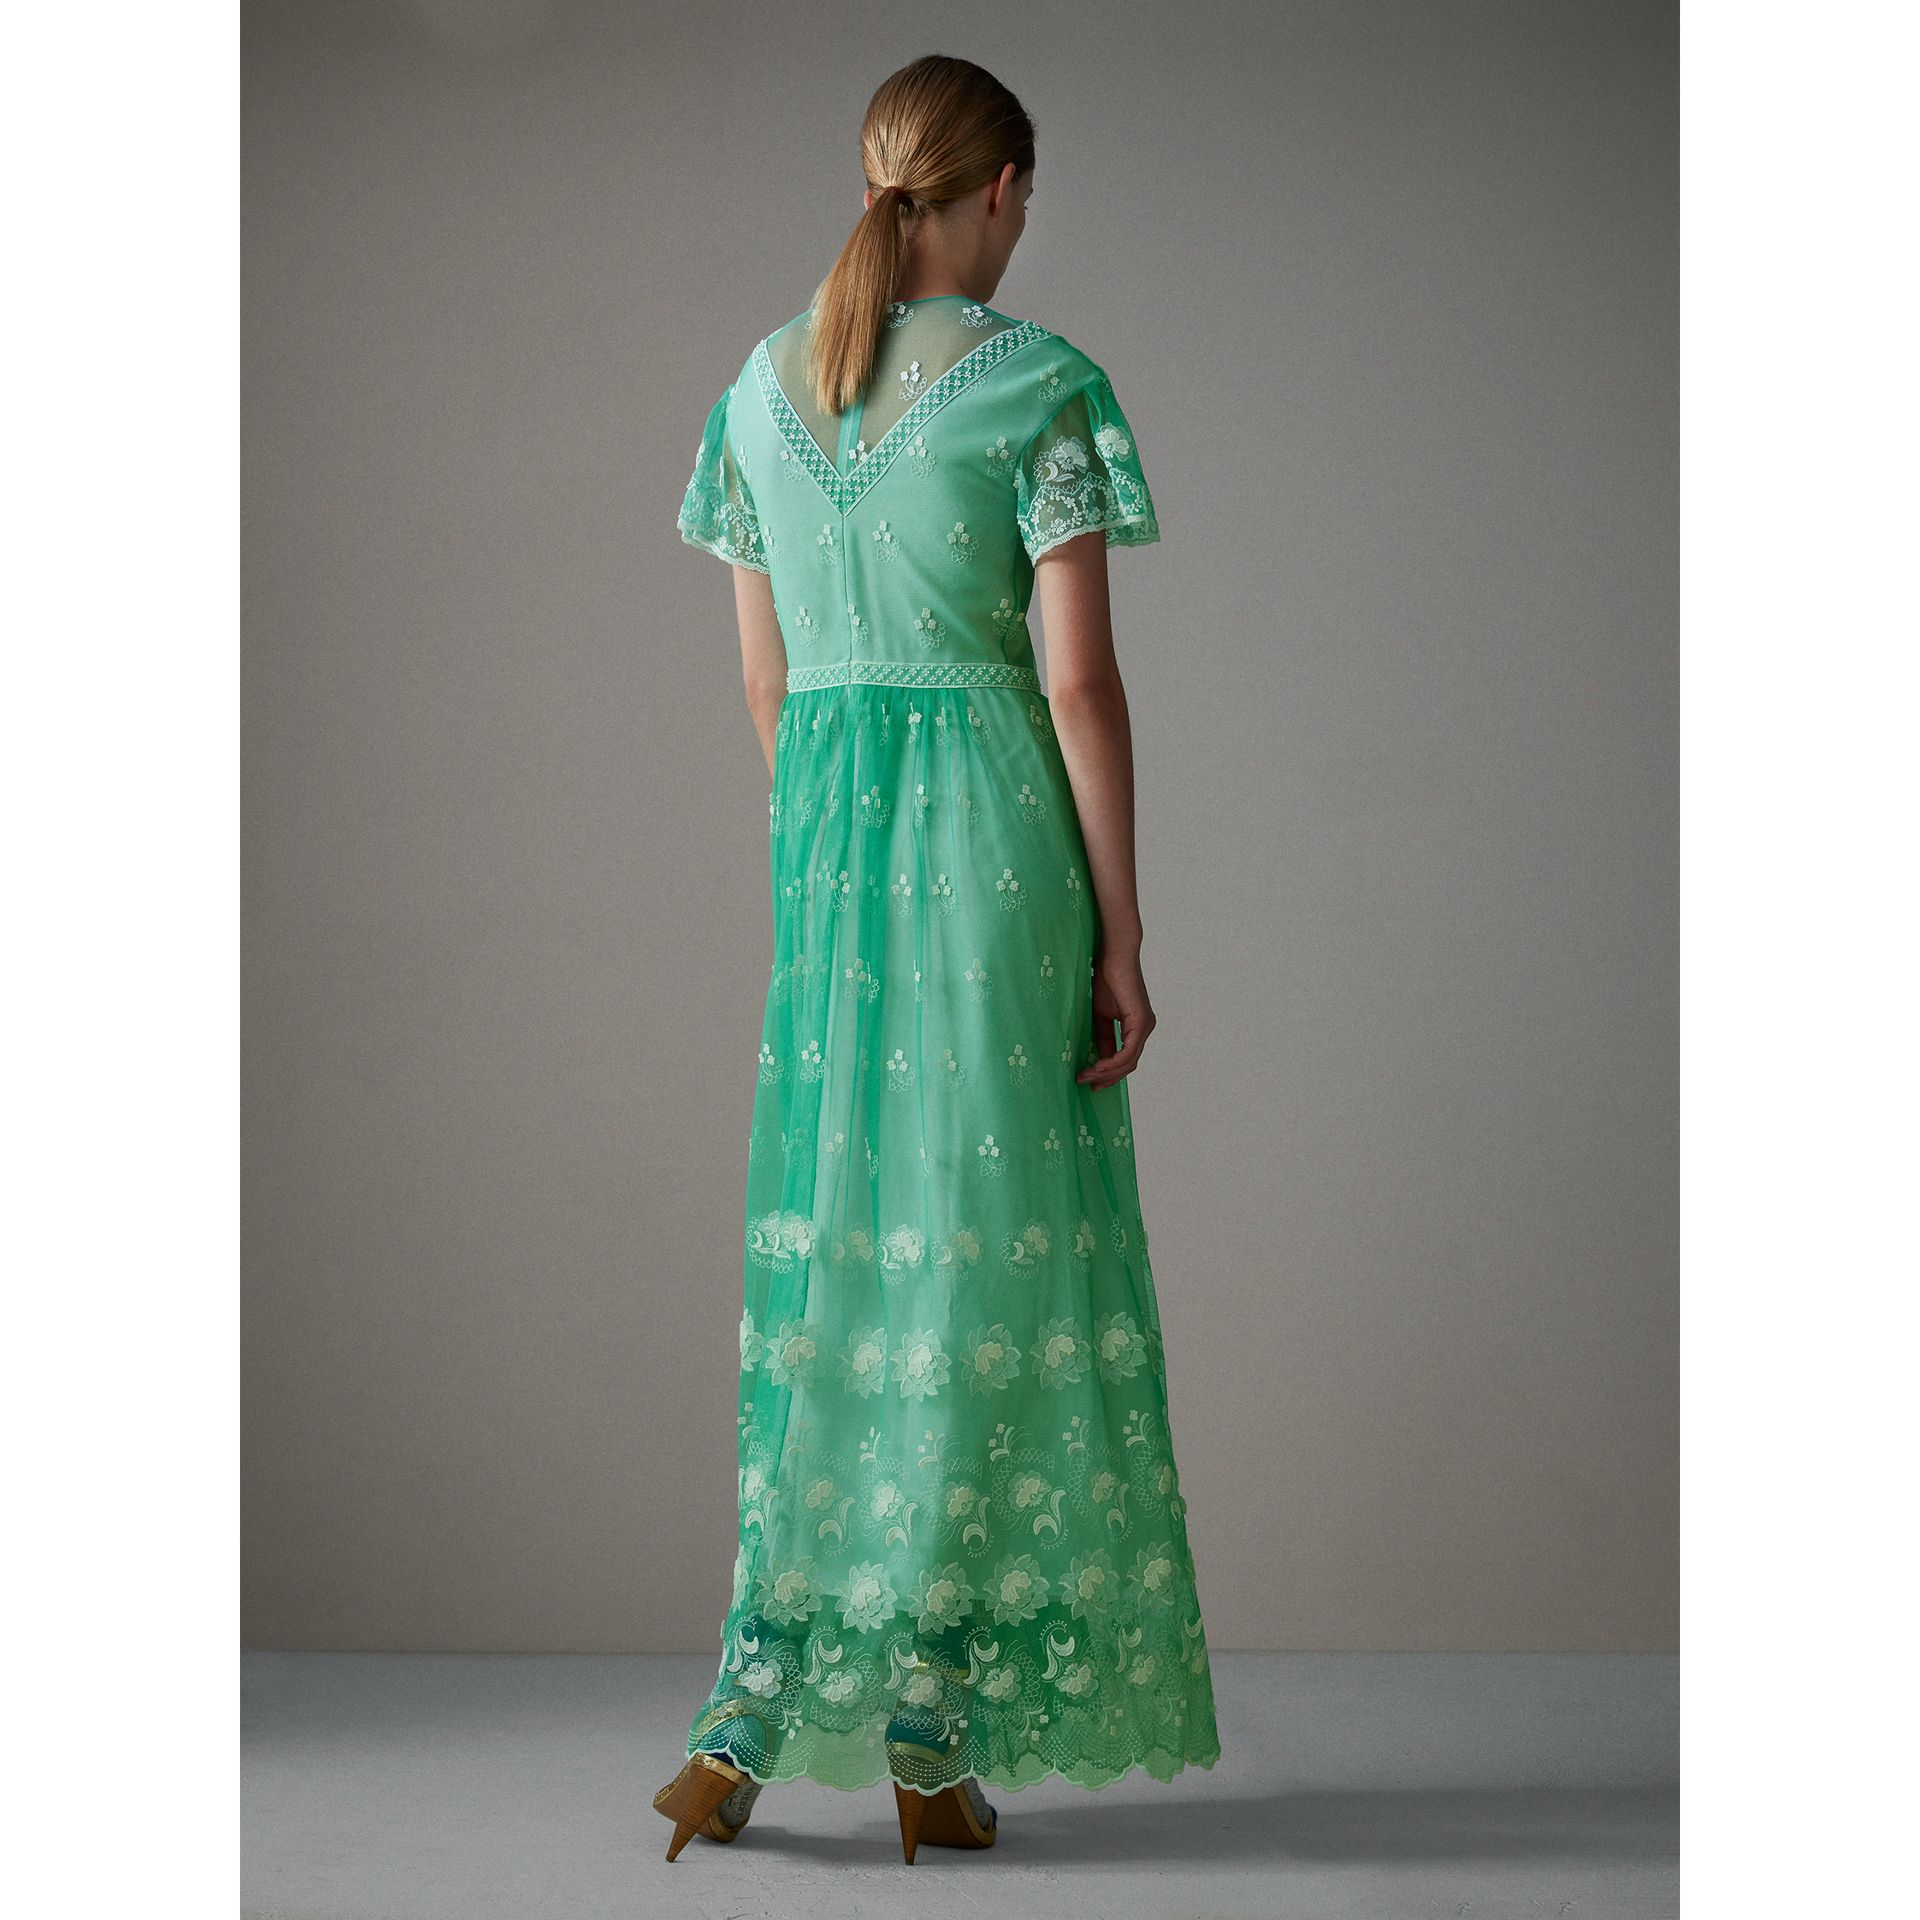 Embroidered Tulle Gathered Dress in Aqua Green/white - Women | Burberry United States - gallery image 2